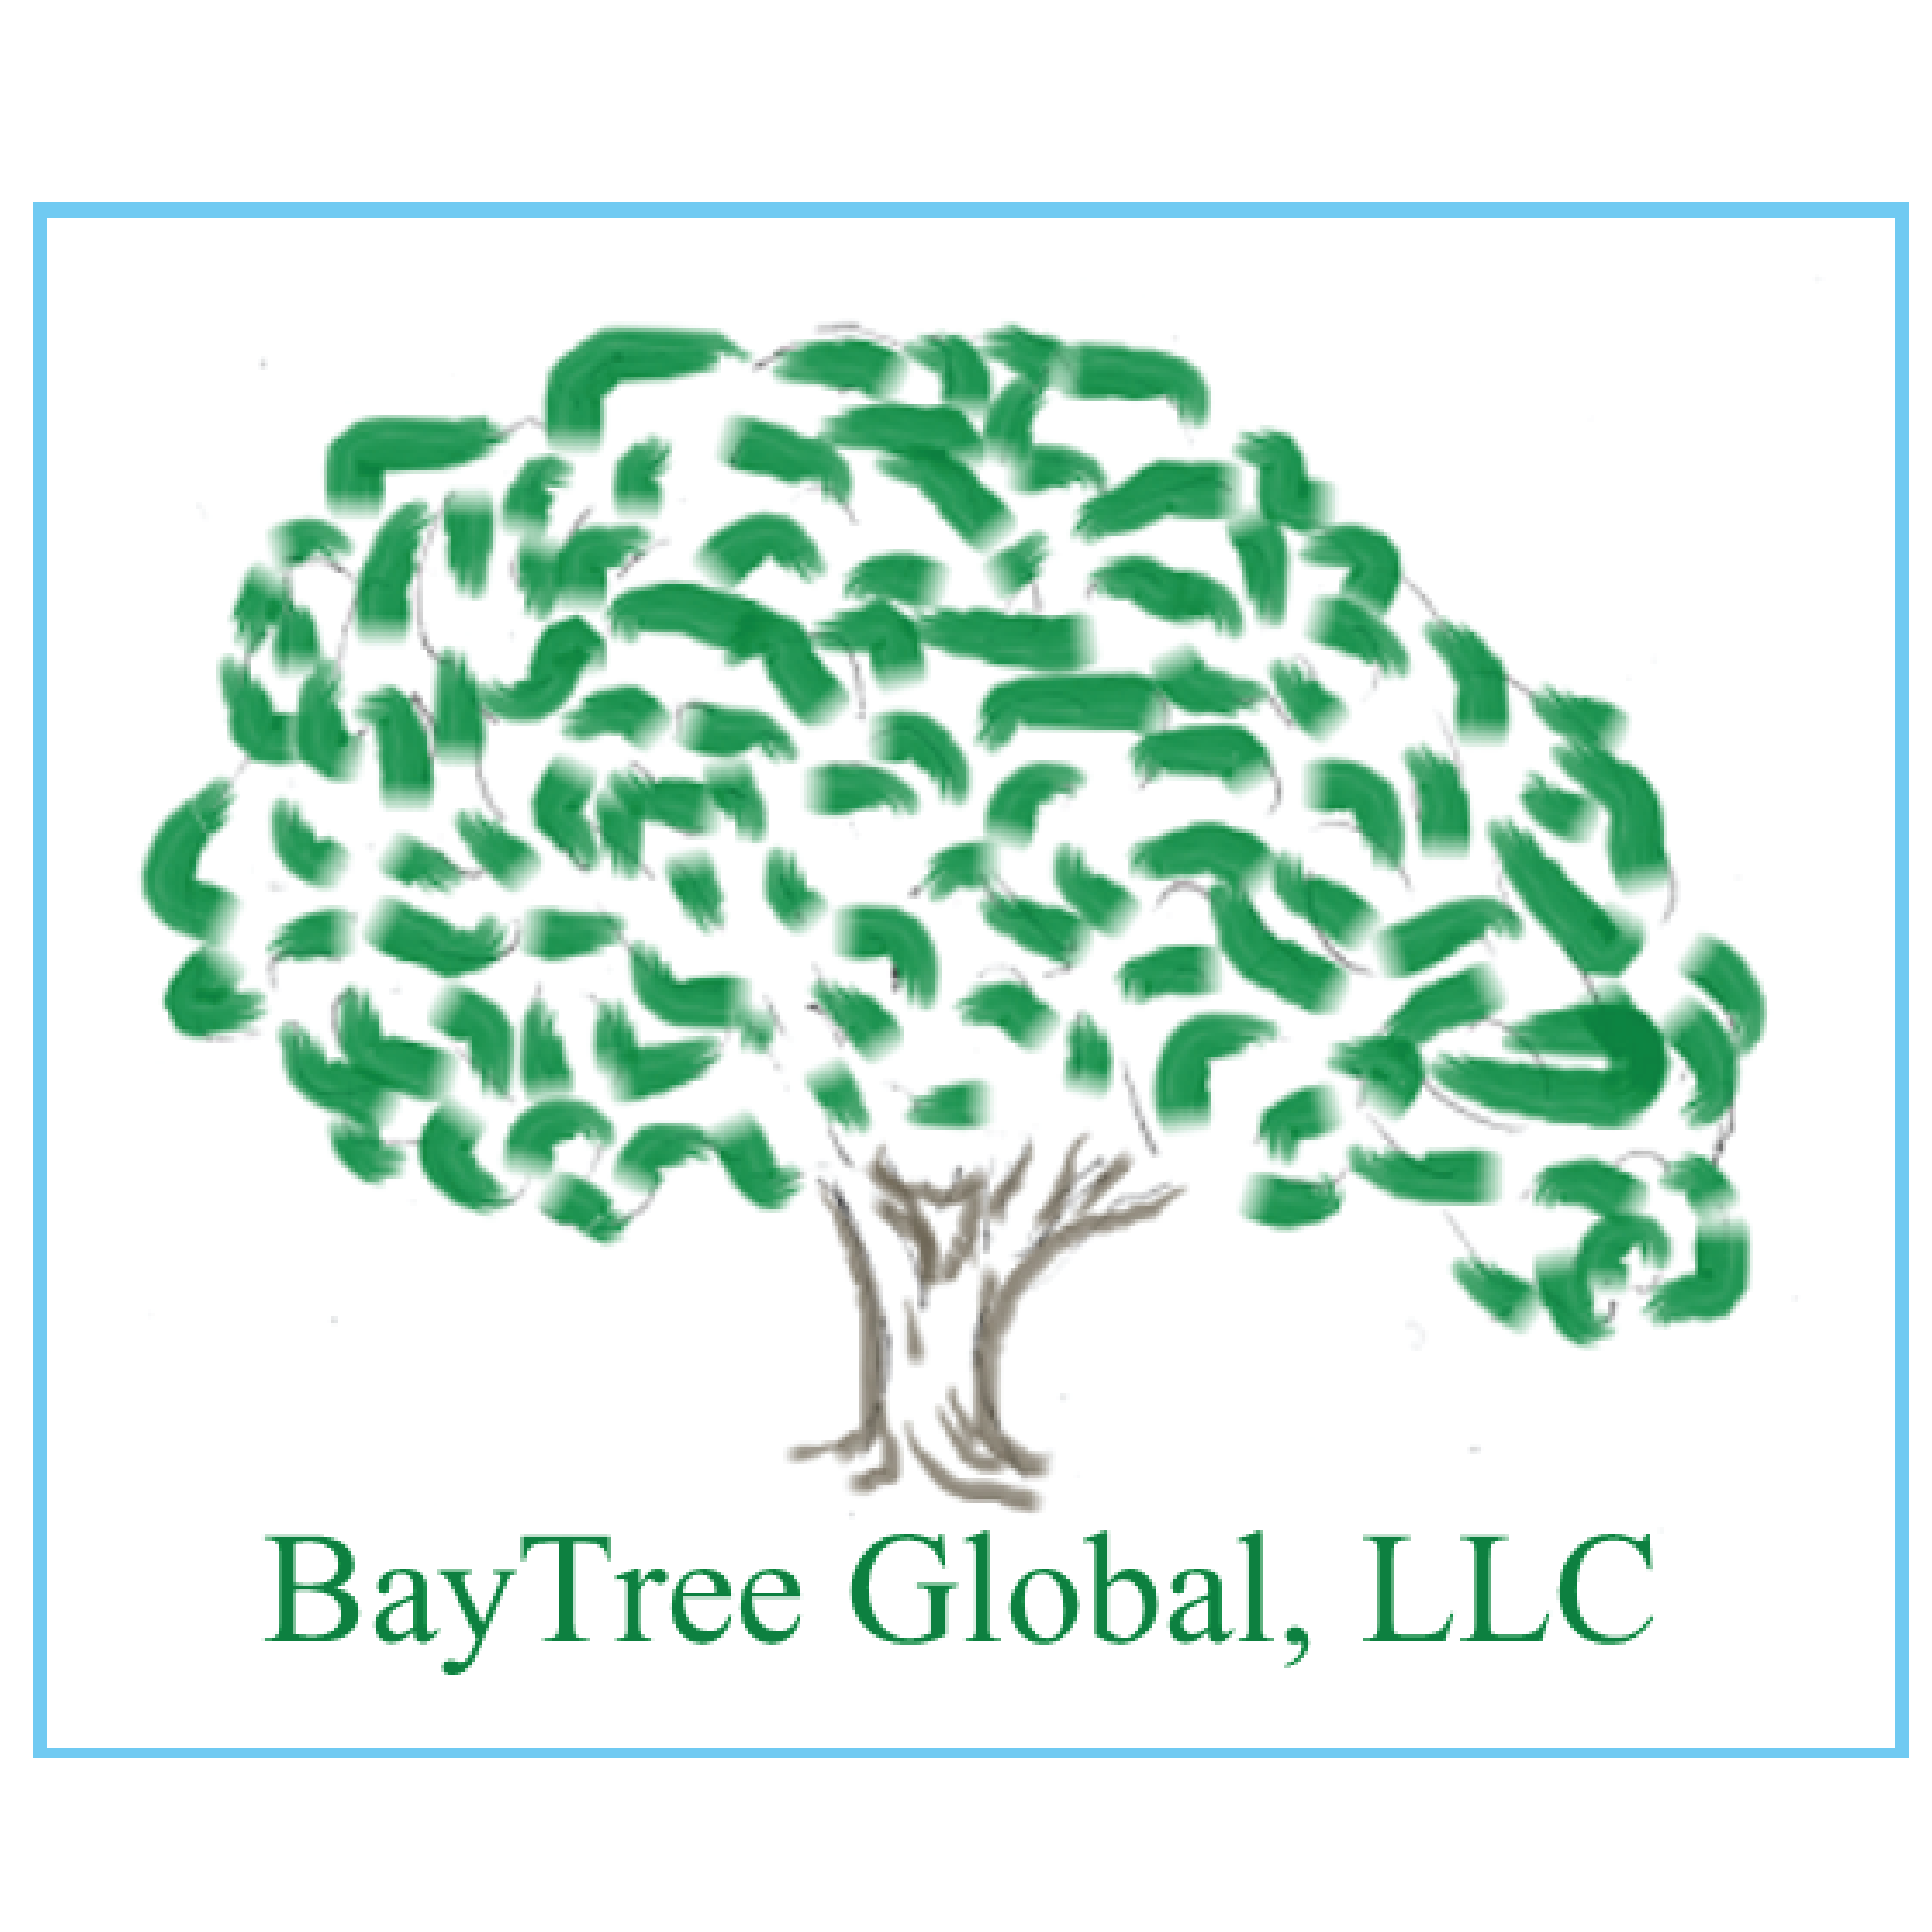 BayTree Global, LLC